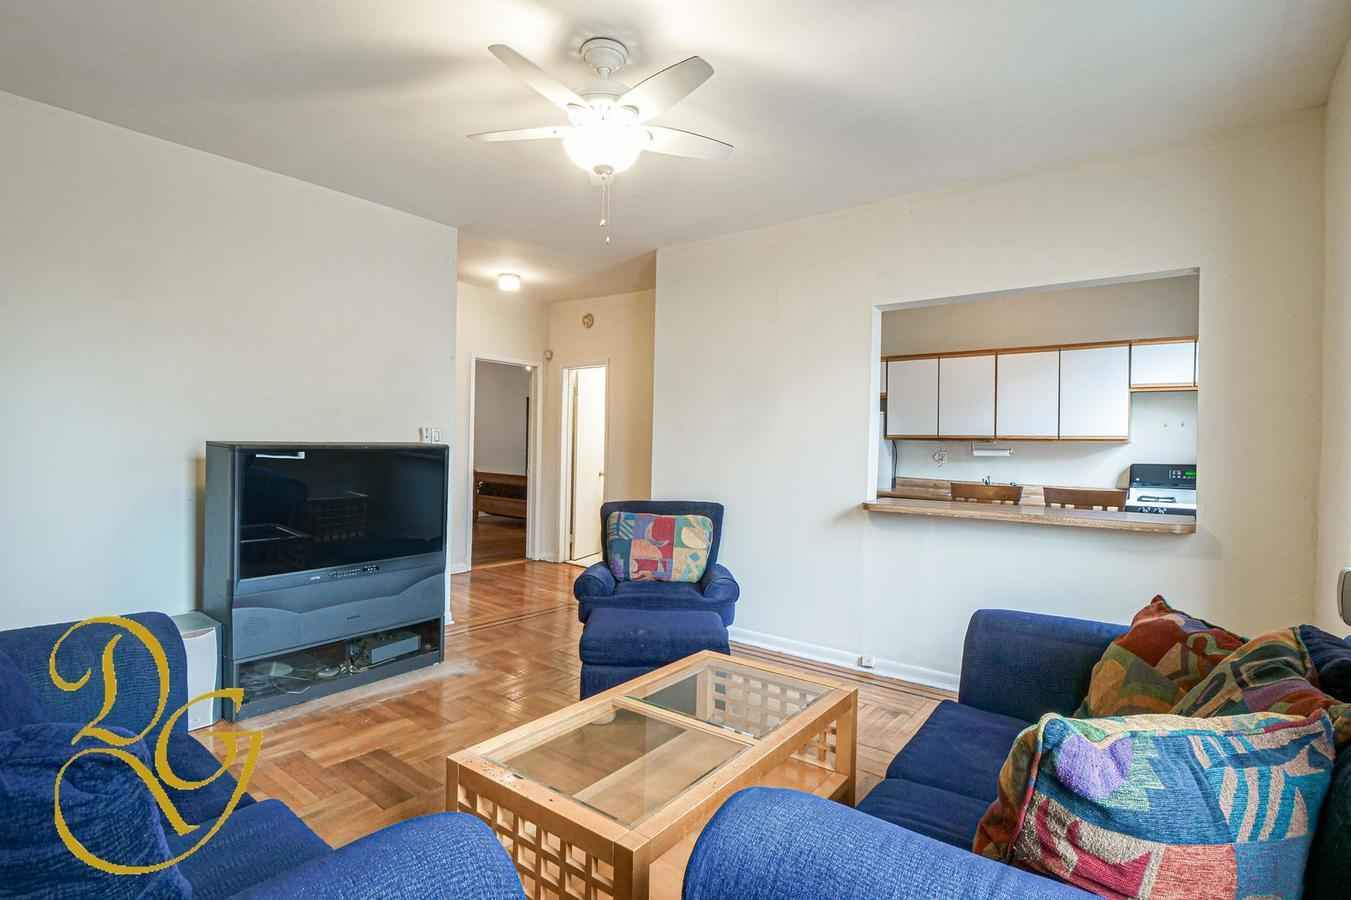 Apartment for sale at 7901 4th Avenue, Apt B-12